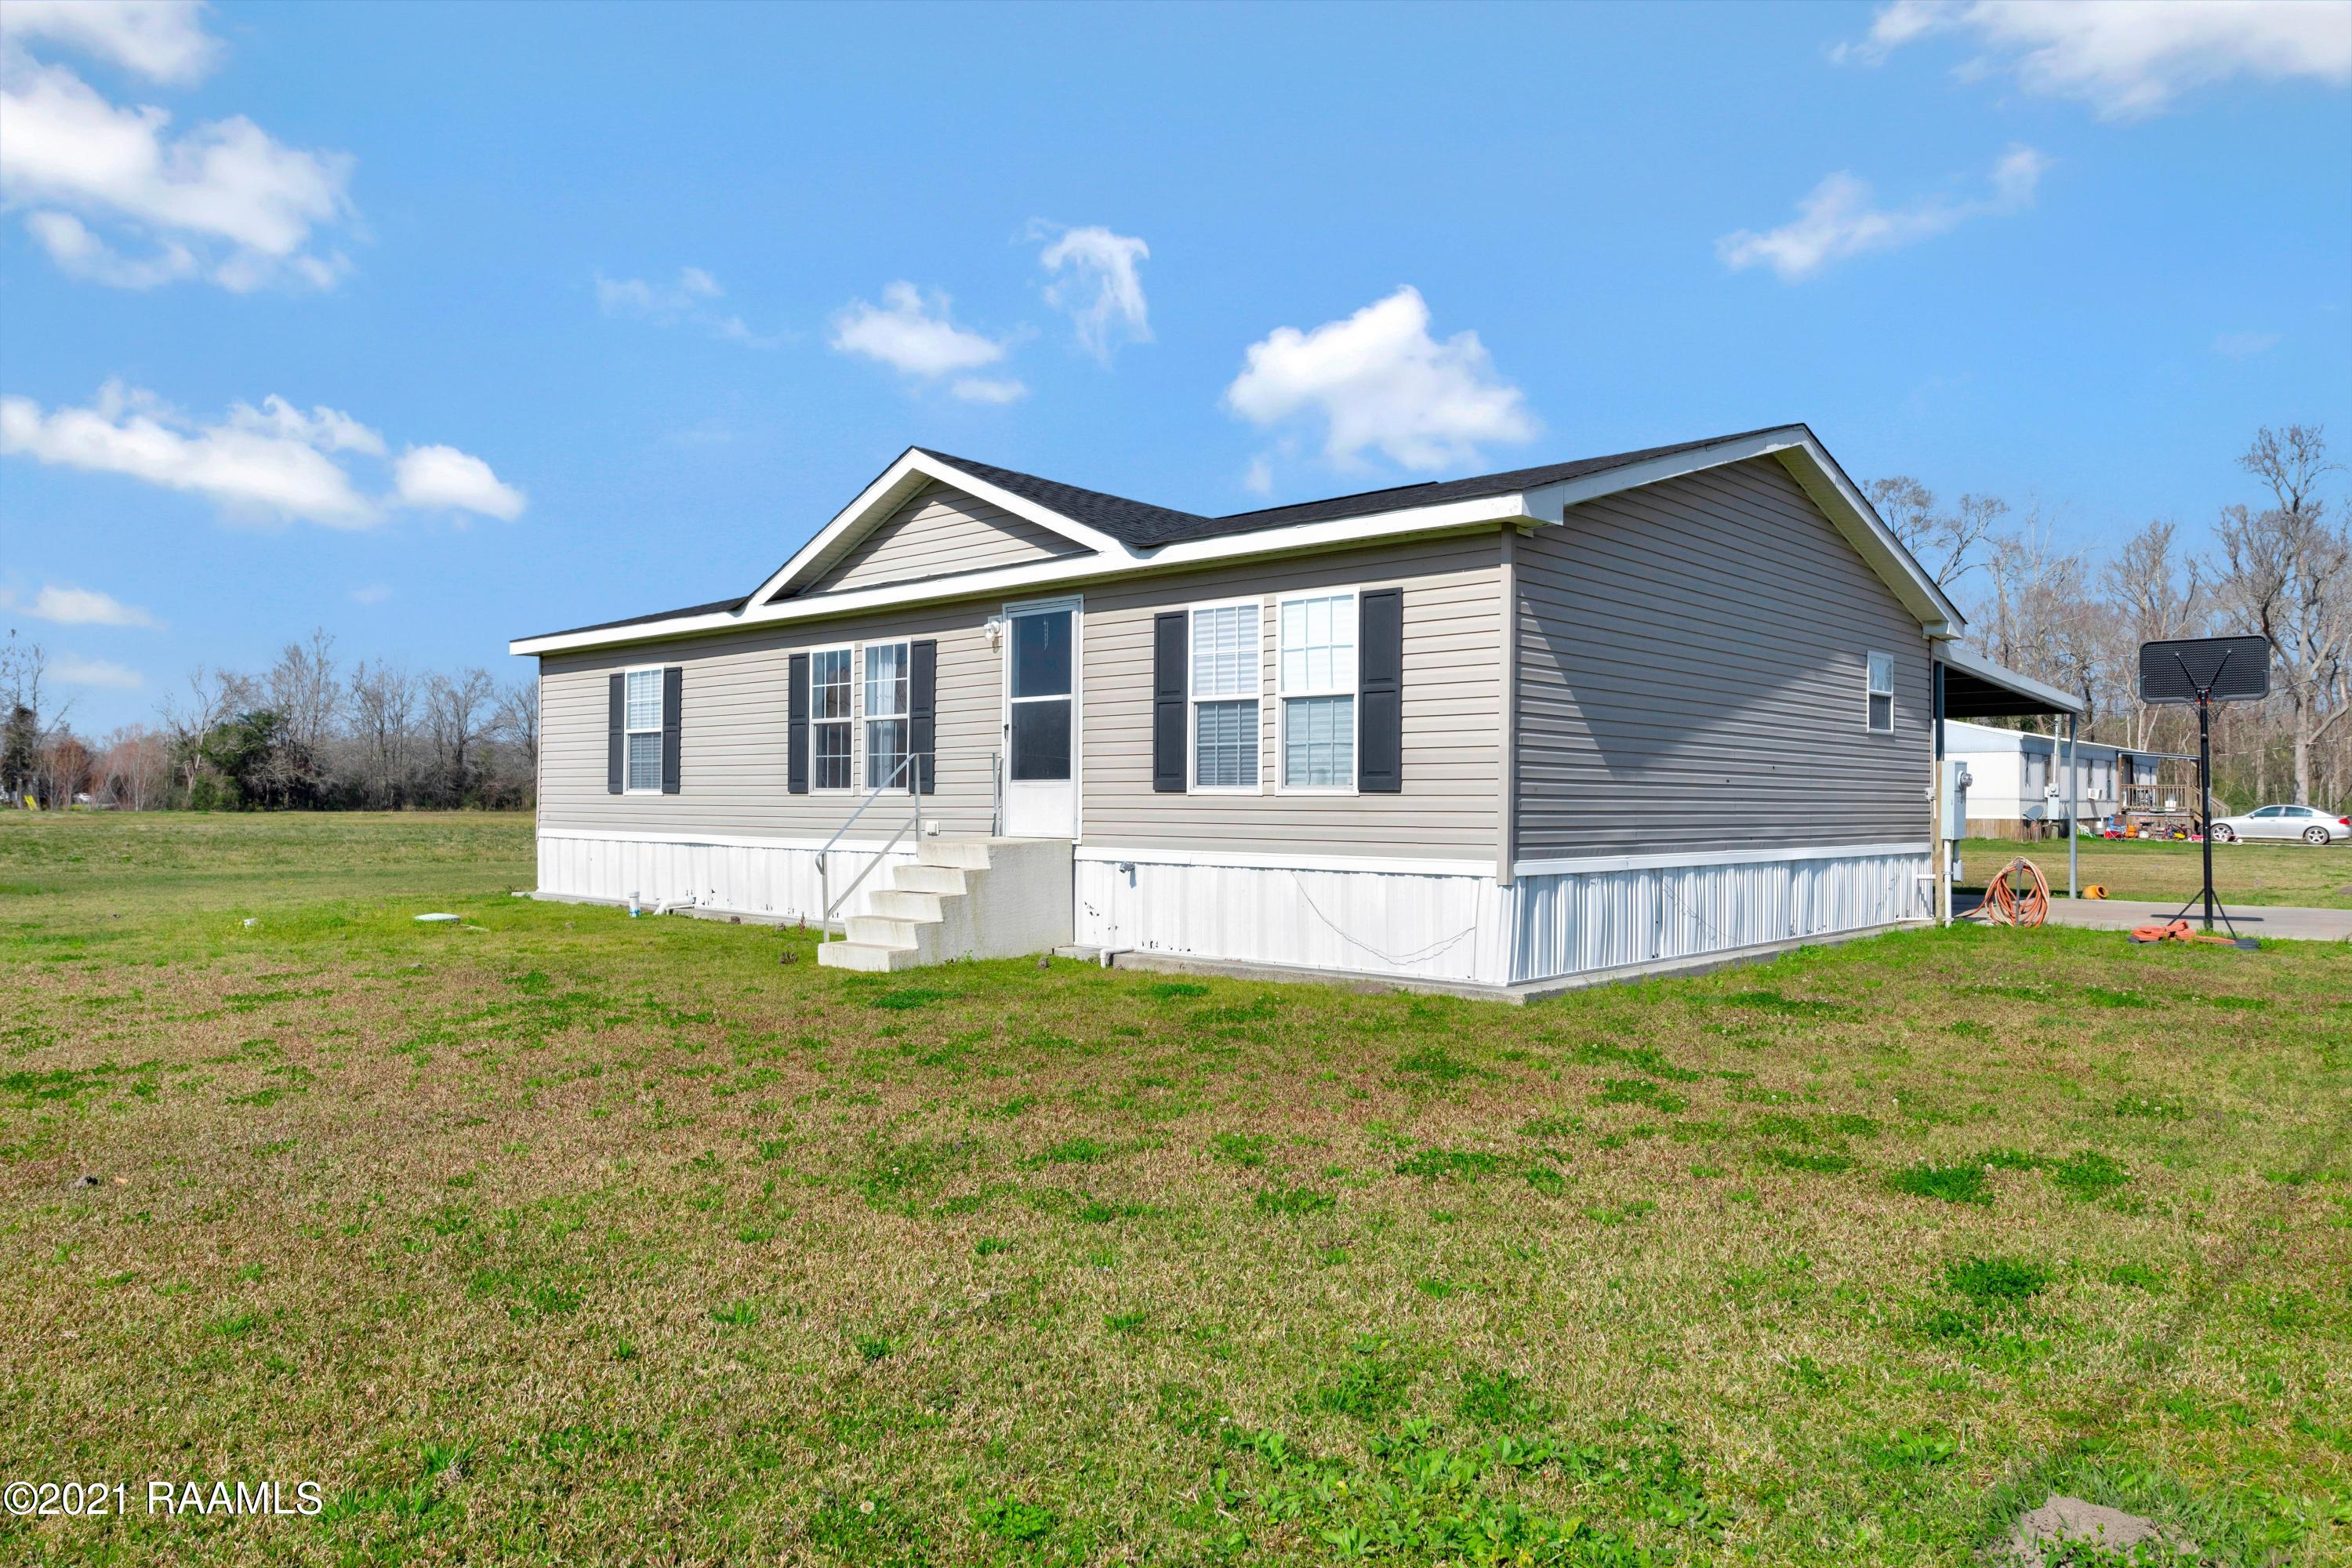 1141d Sam Champagne Road, Breaux Bridge, LA 70517 Photo #3